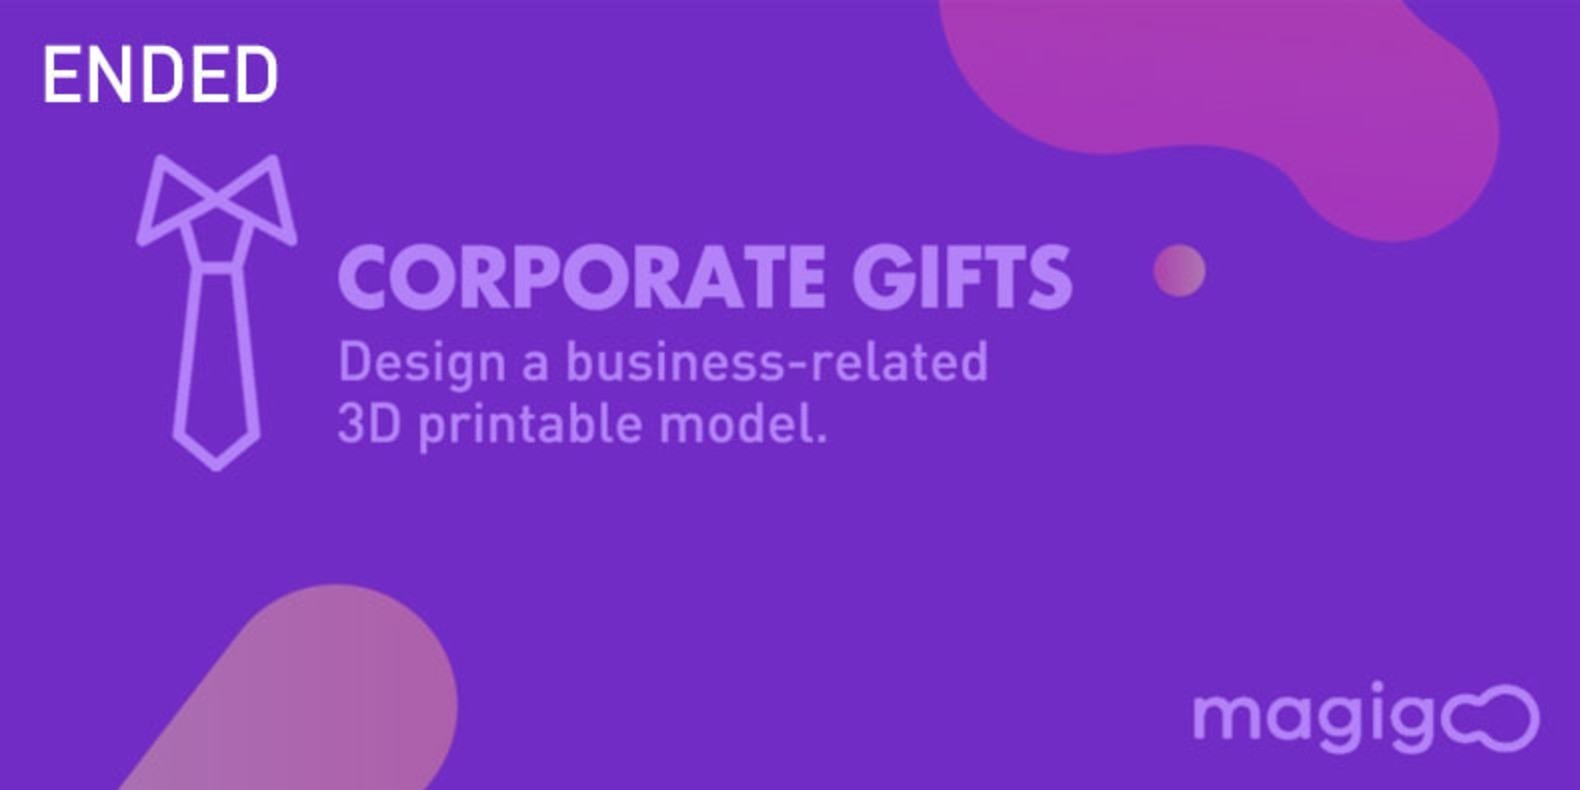 Design a 3D printable Corporate Gift, an object we can offer in a business relationship